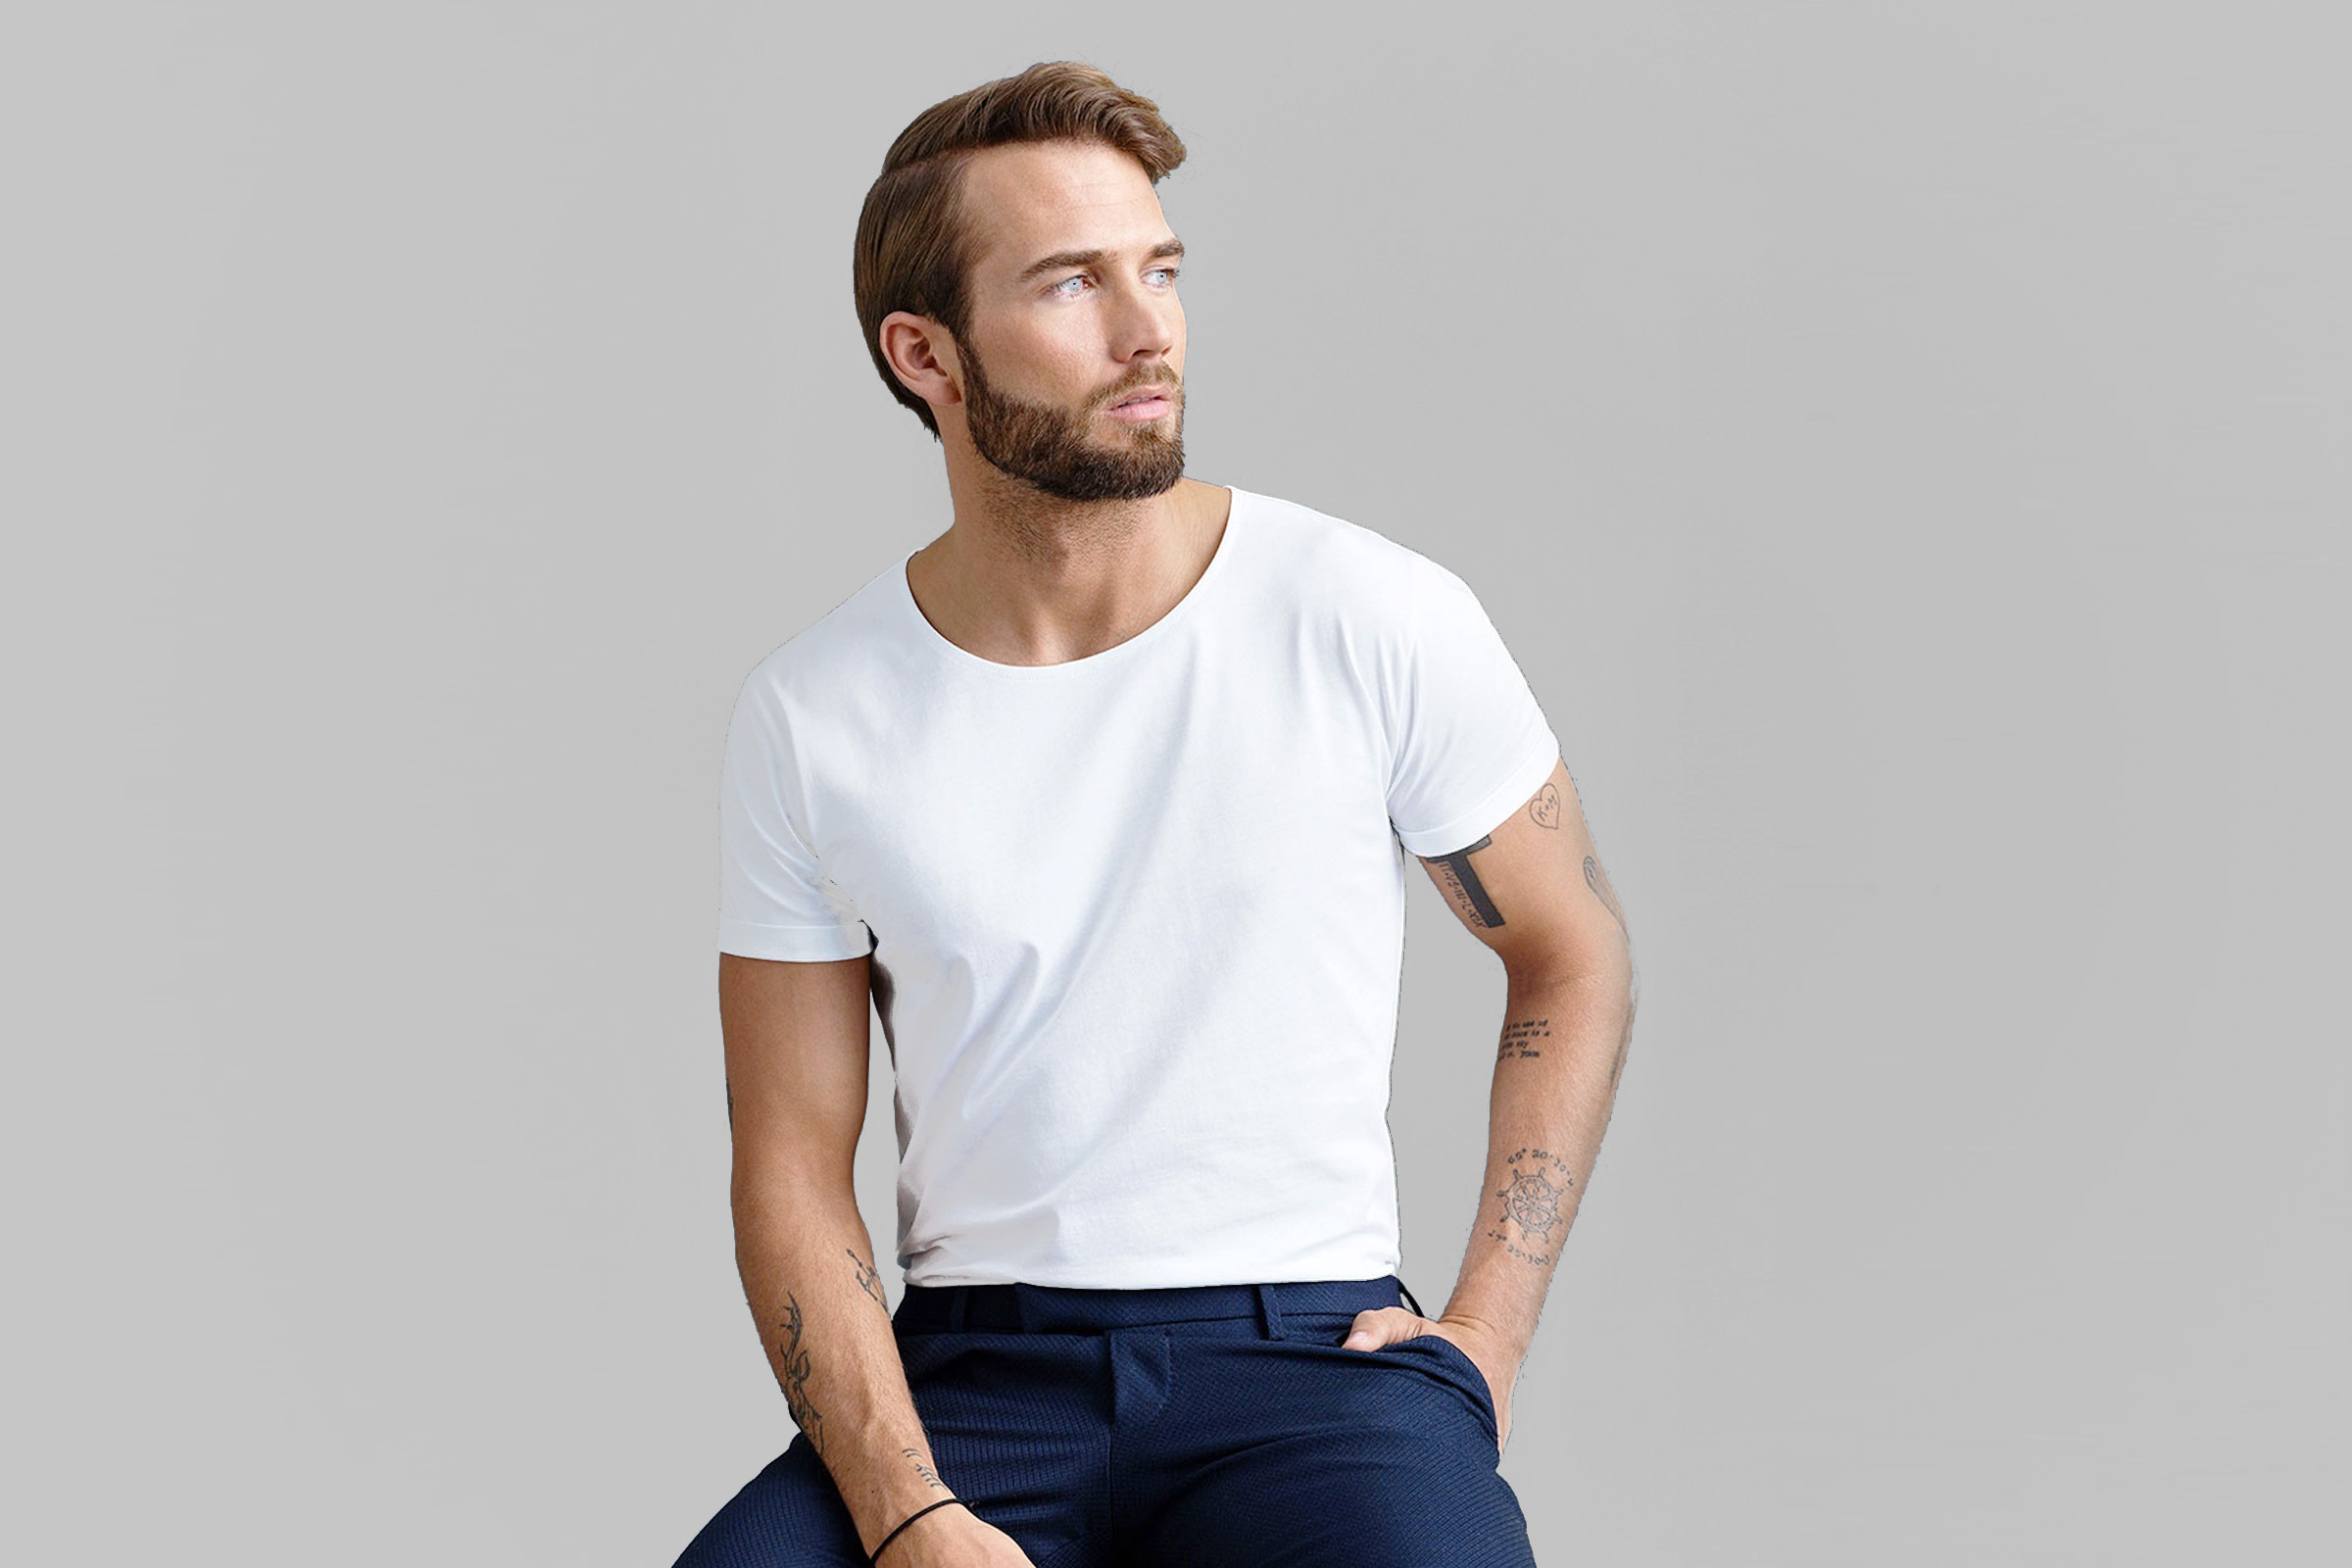 Men's Basic Tees Son Of A tailor